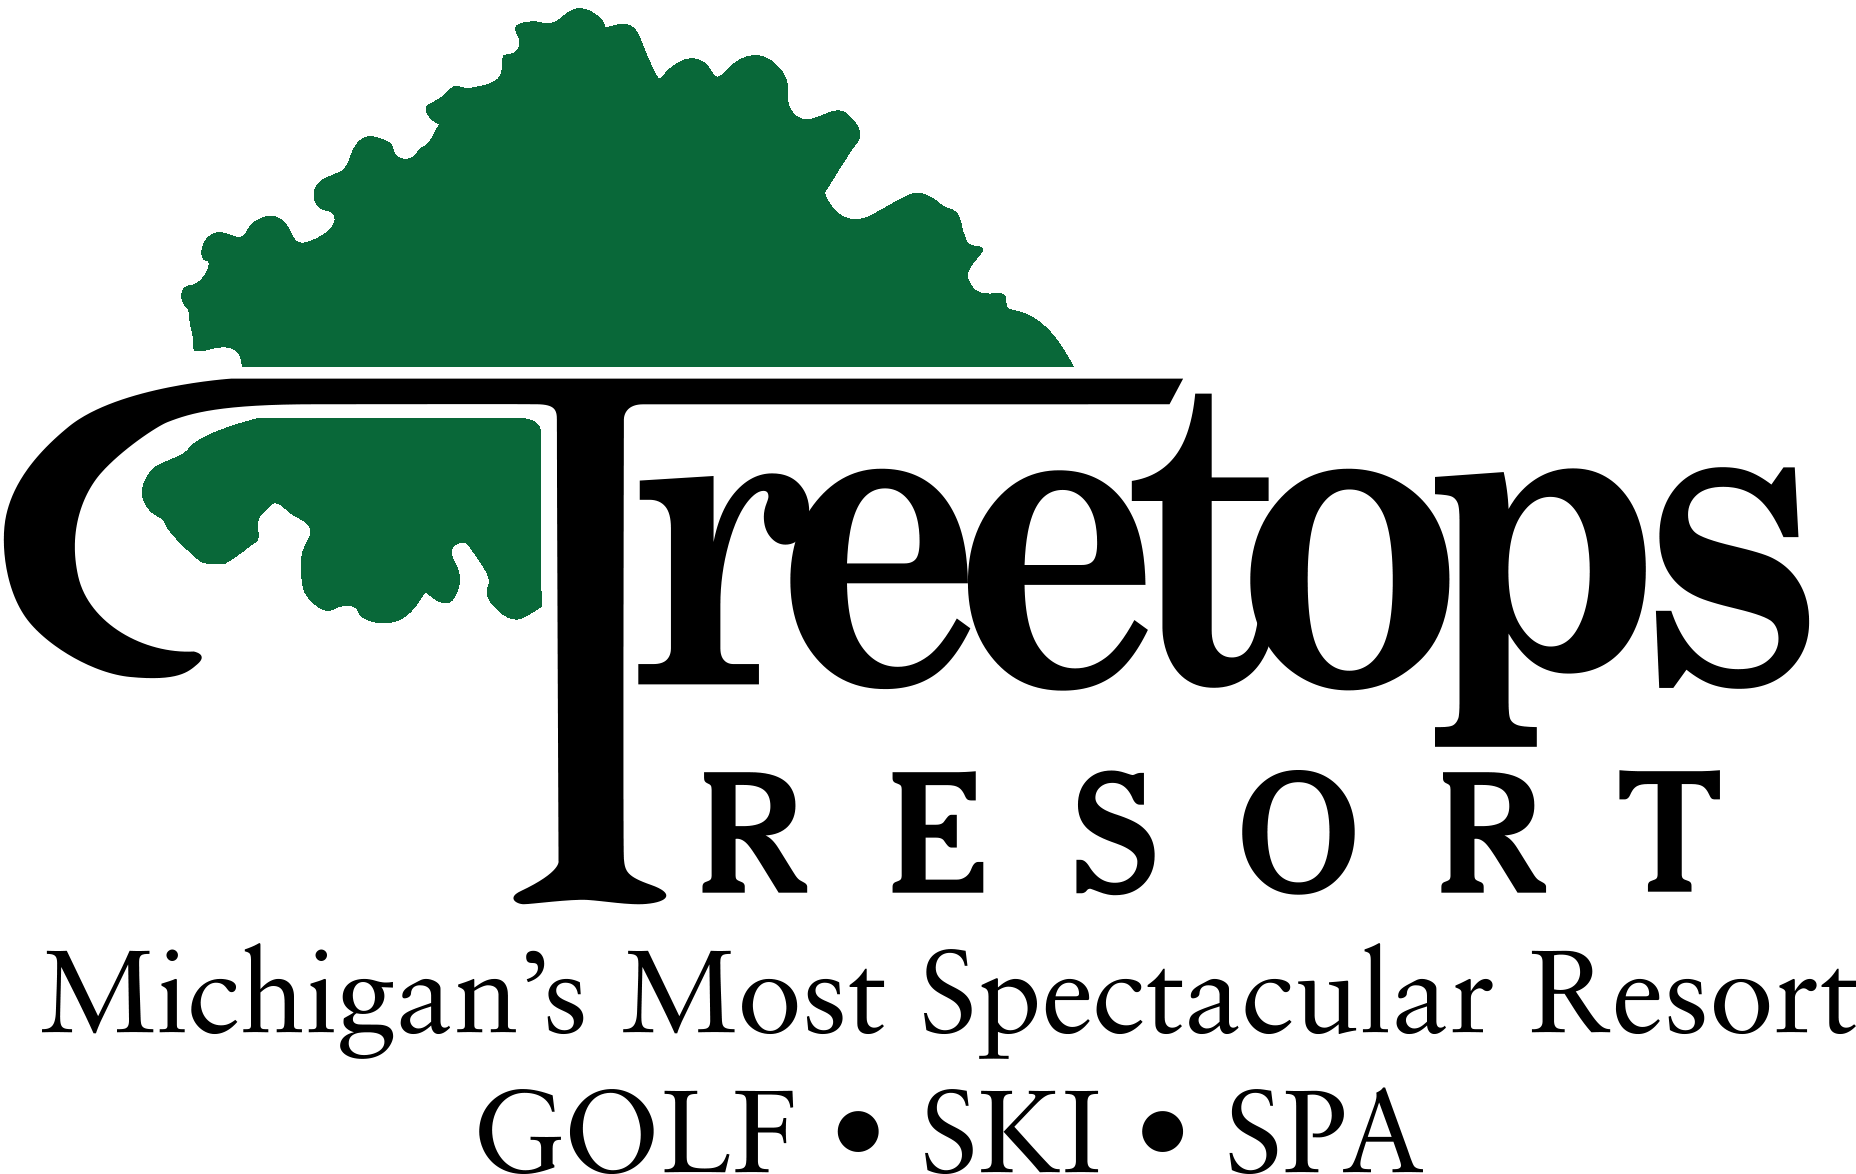 TreetopsResortLogoWithTag-1.png